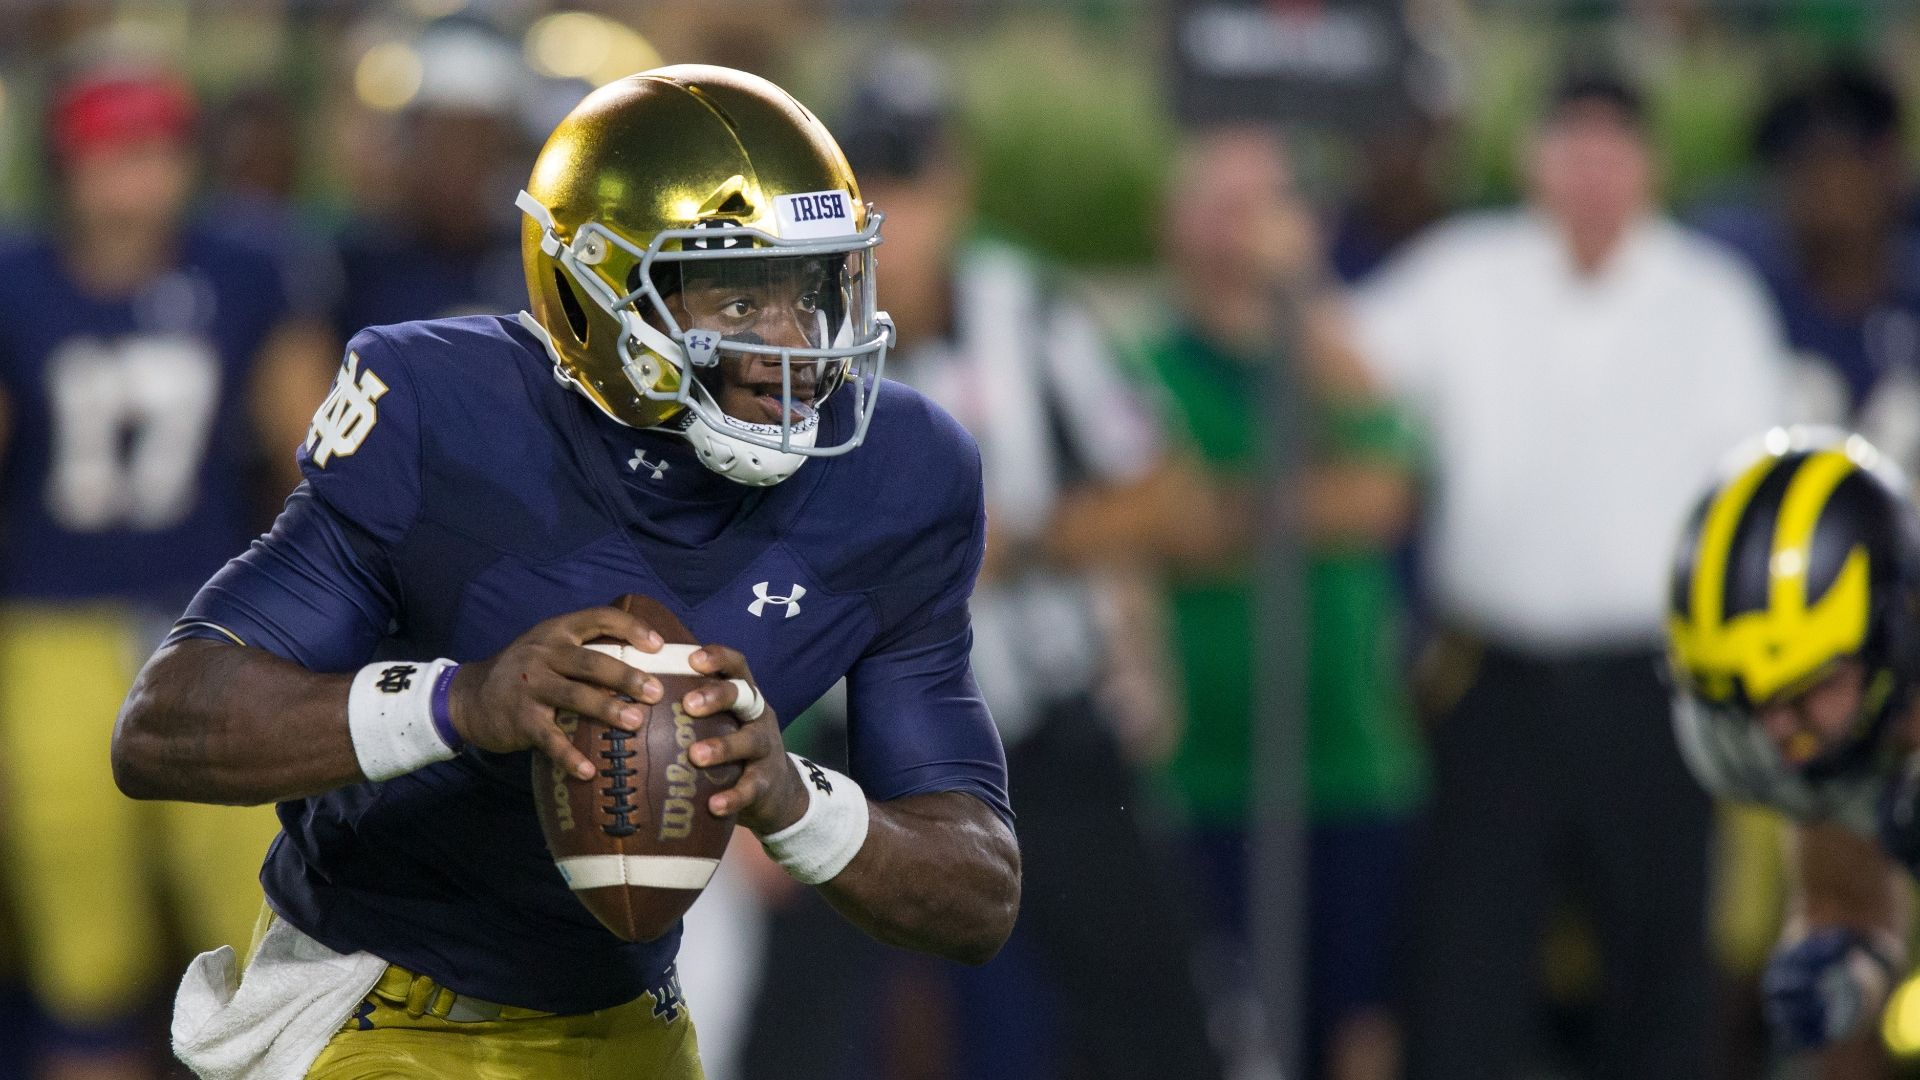 Former Notre Dame QB Wimbush joining UCF